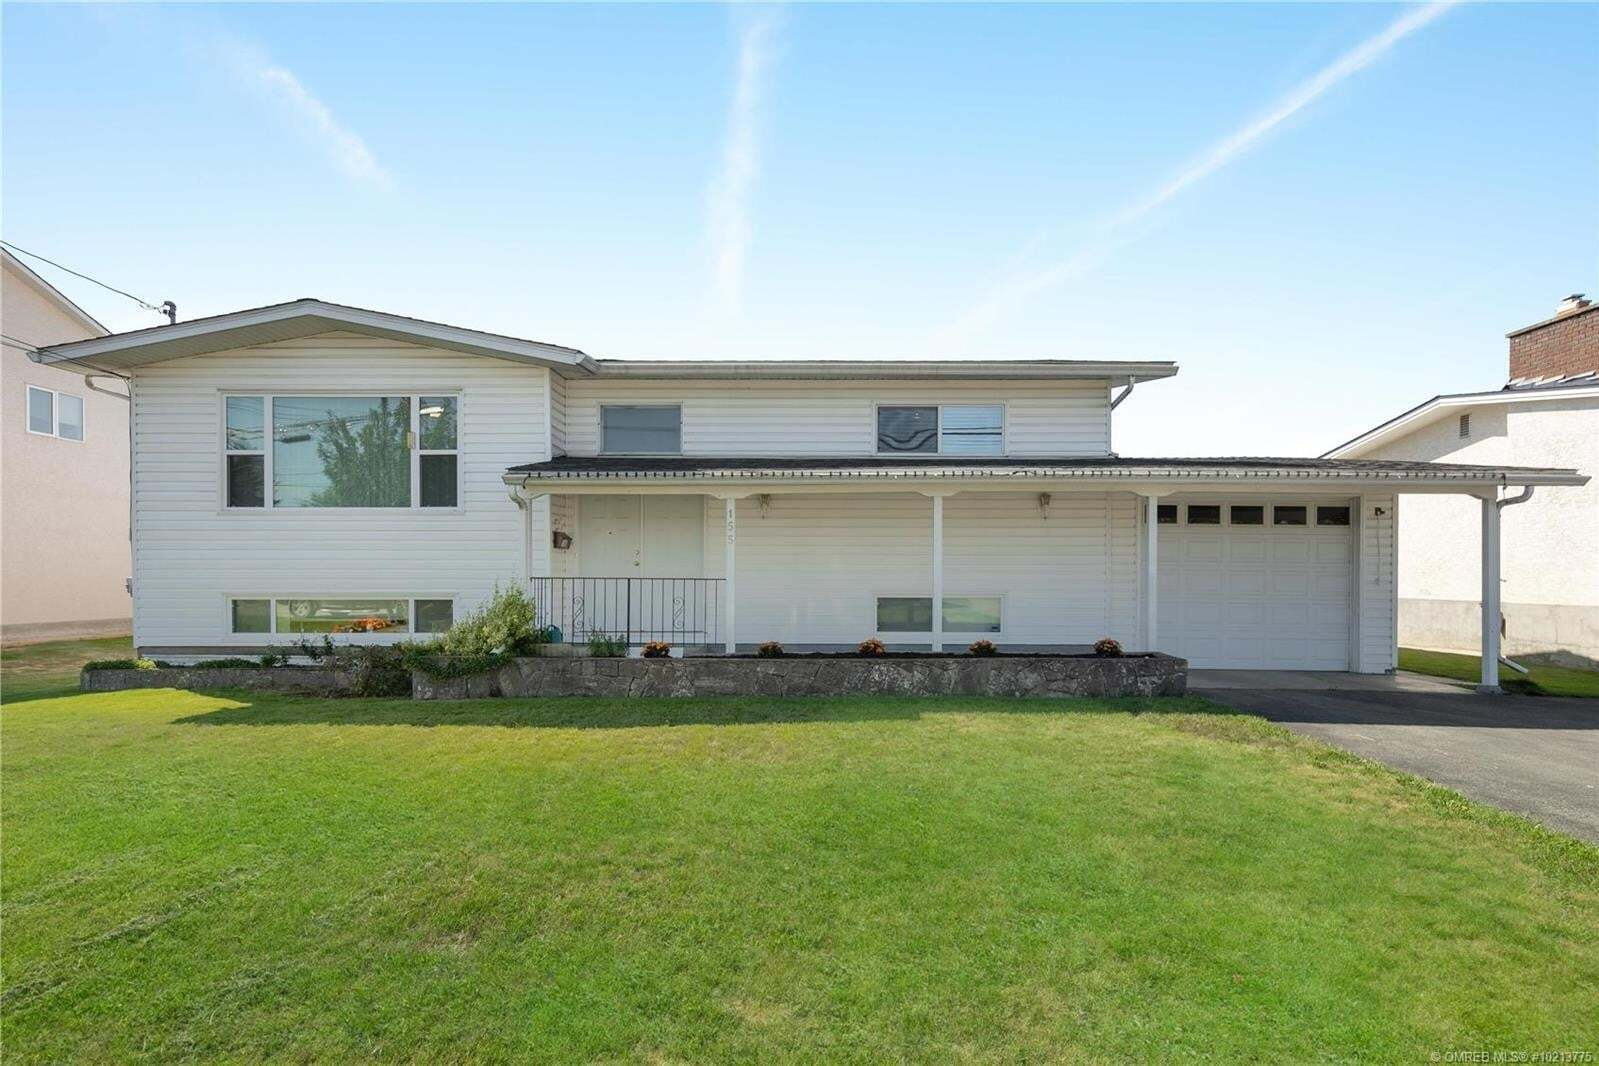 House for sale at 155 Bach Rd Kelowna British Columbia - MLS: 10213775